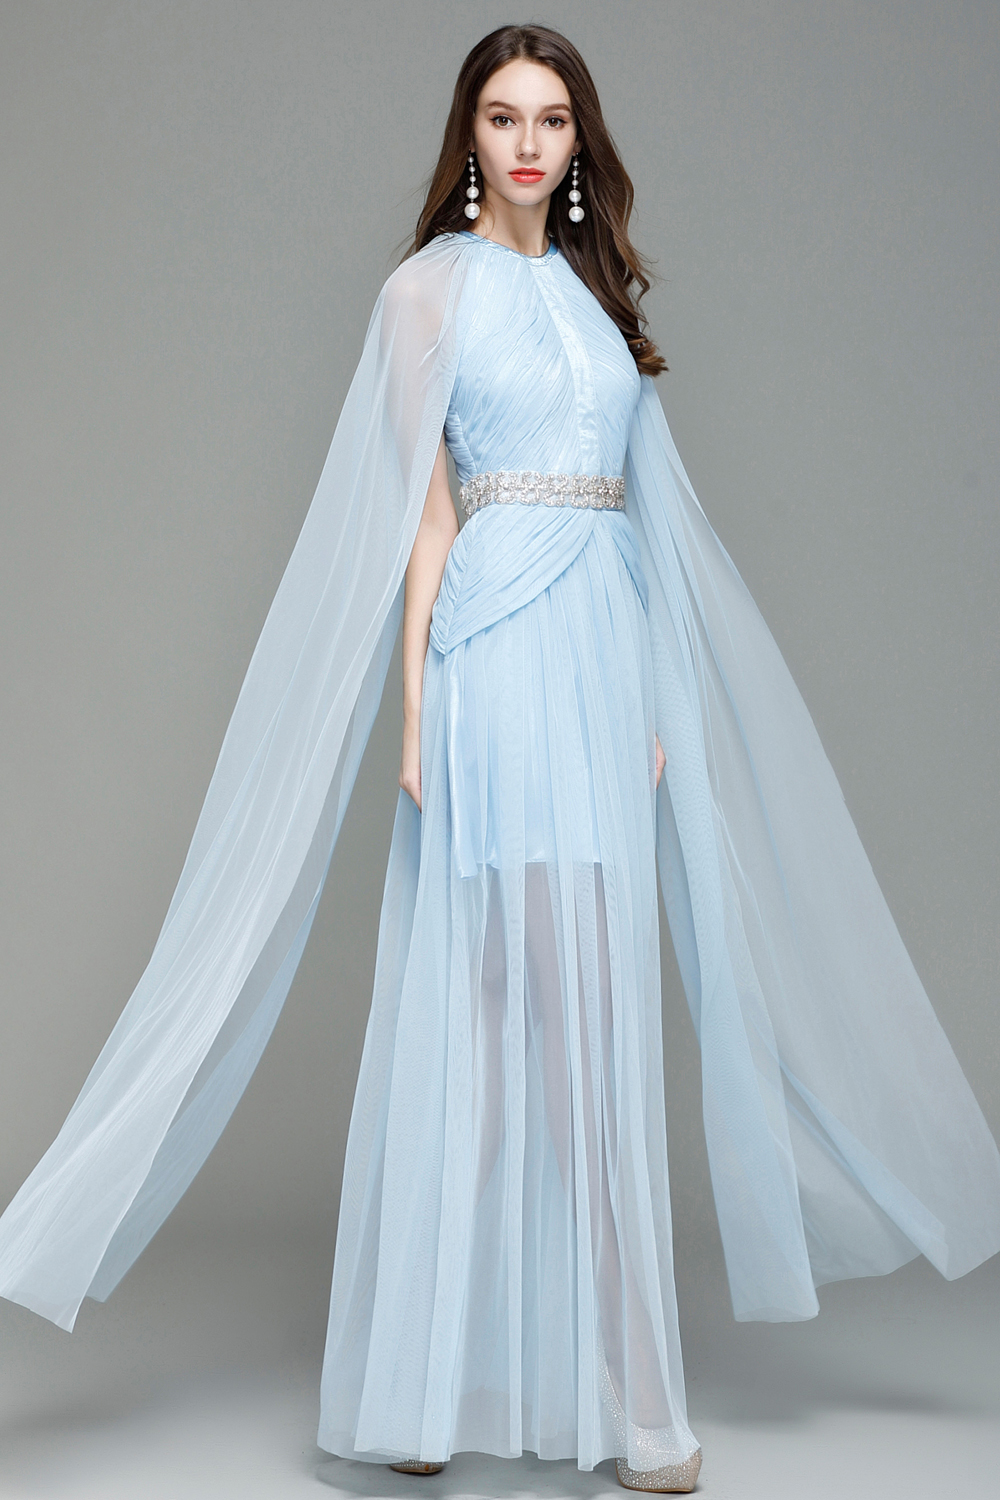 Amazing Shawls For Prom Dresses Collection - All Wedding Dresses ...